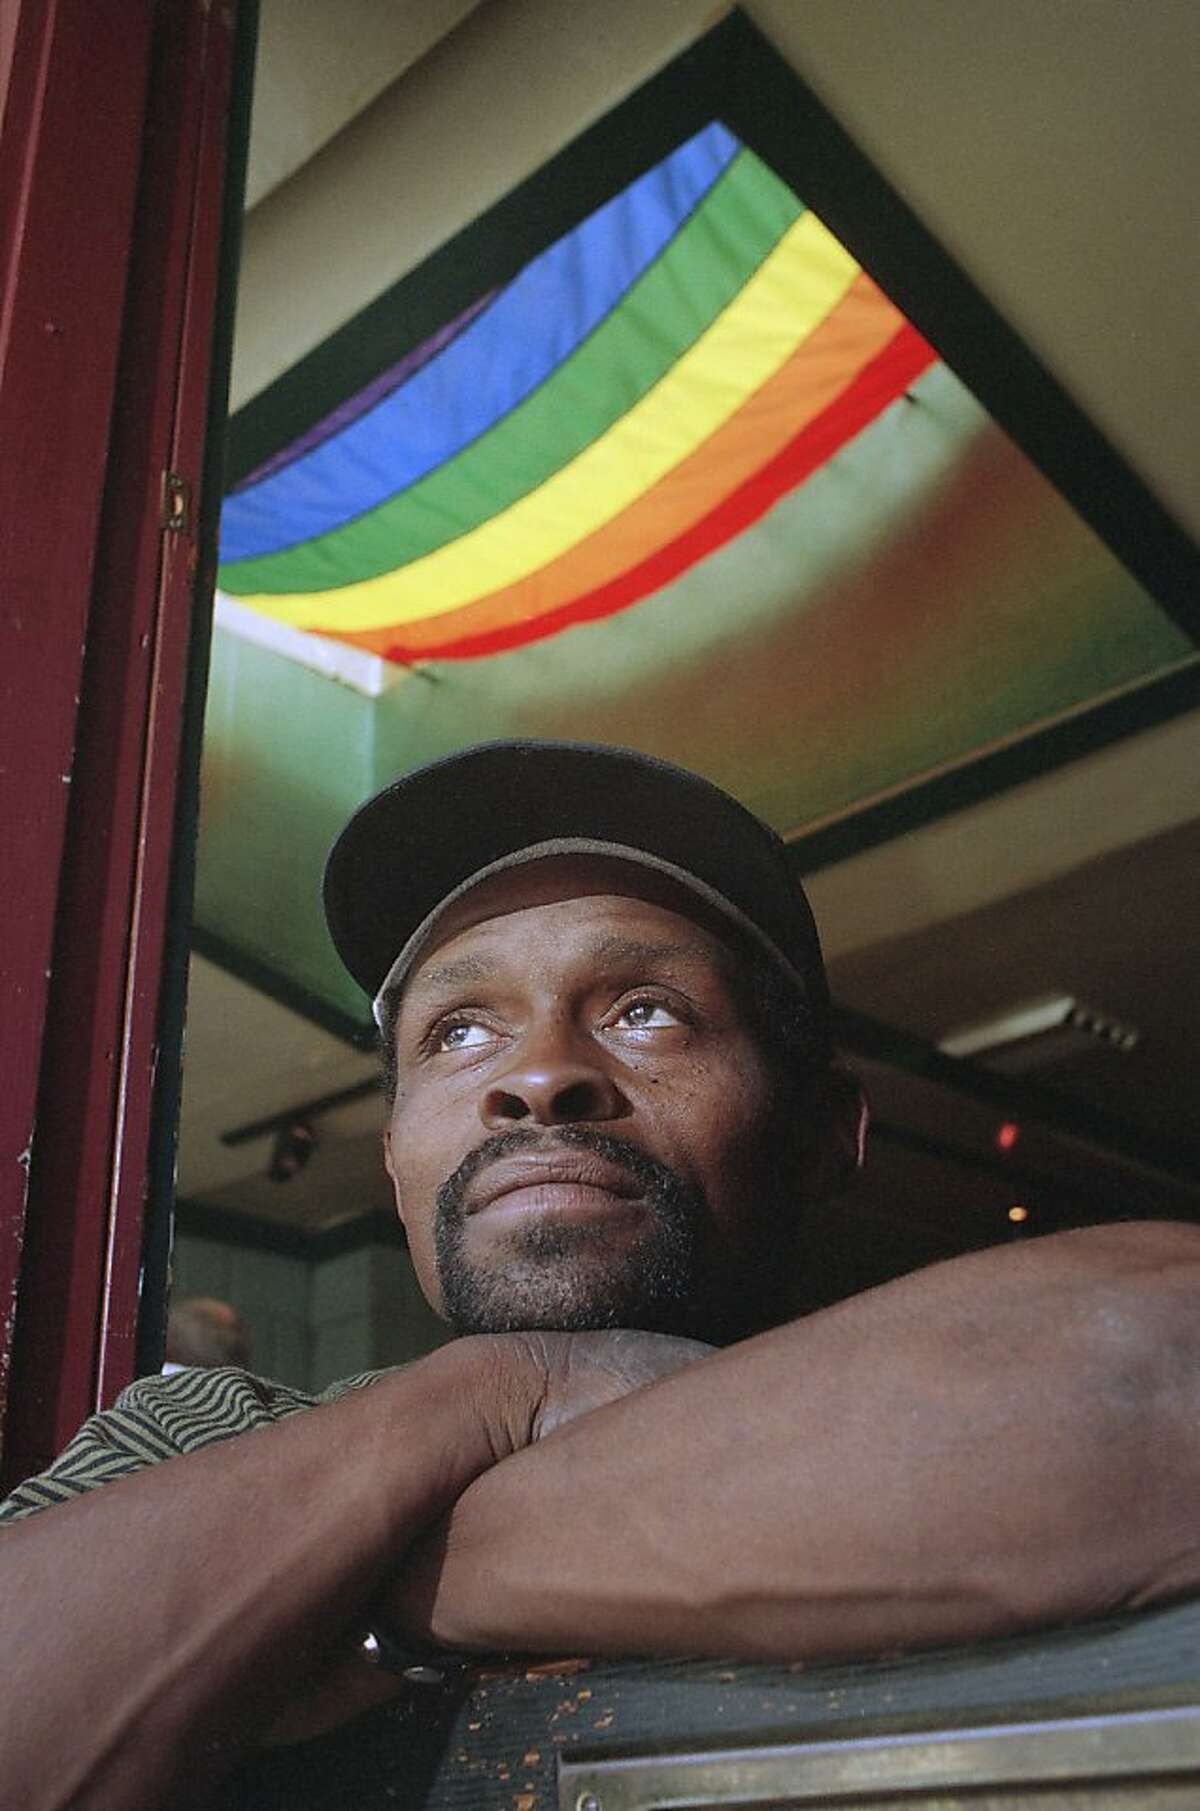 Former Major League Baseball player Glenn Burke sits in a Castro District restaurant in San Francisco in 1993. Burke is dying of AIDS. The Rainbow flag signifying Gay Pride hangs behind him. (AP Photo/Mark Hundley)